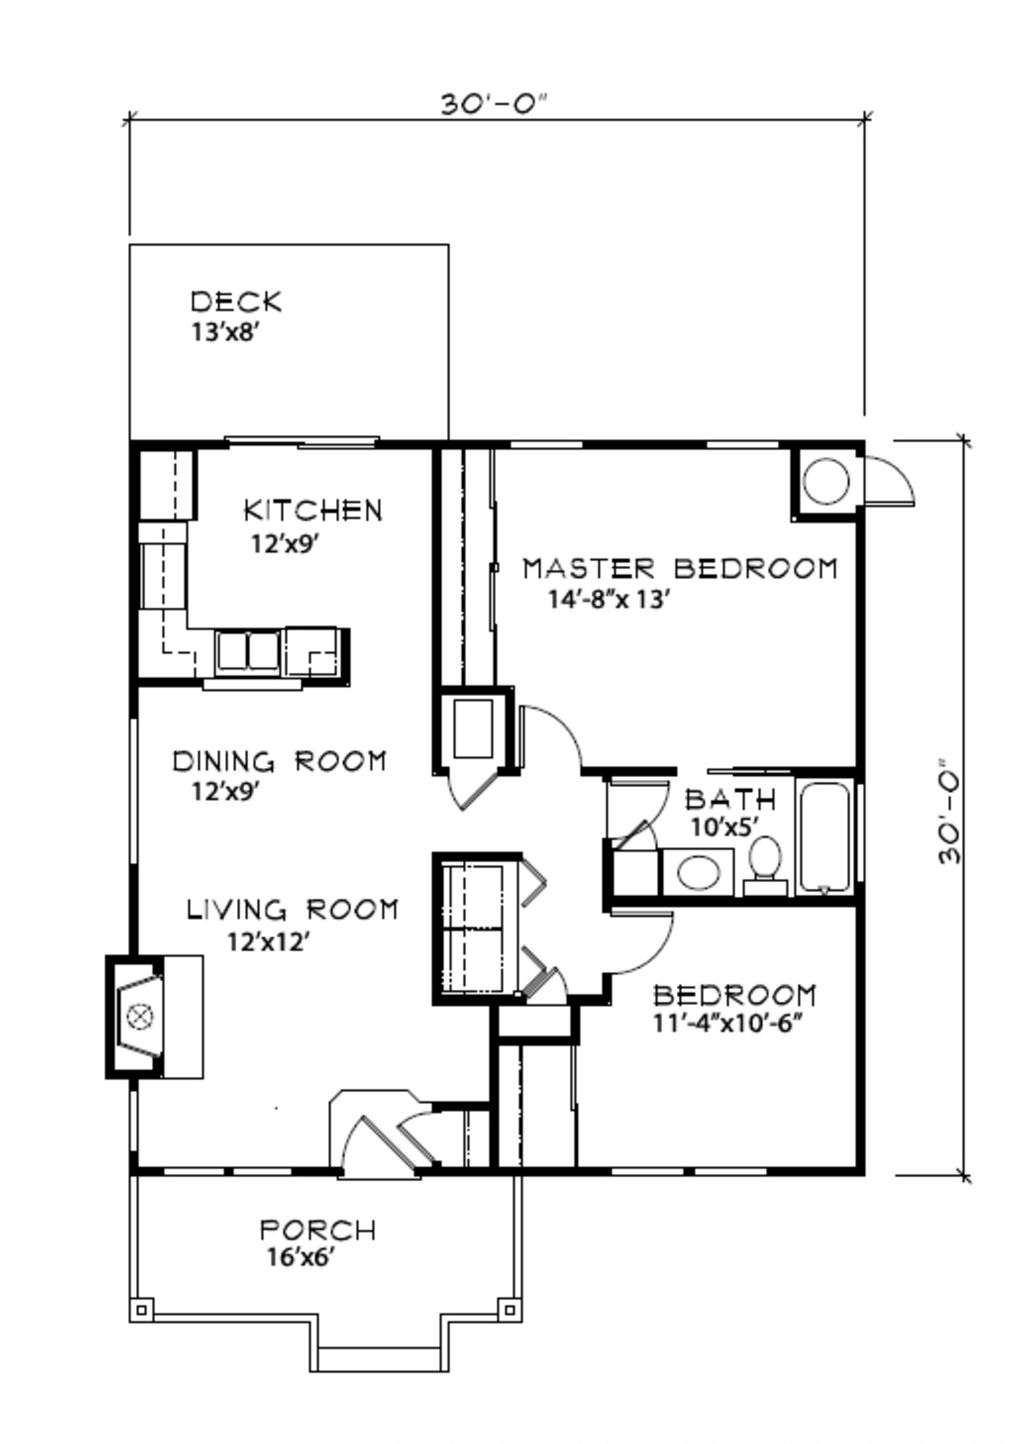 Cottage style house plan 2 beds 1 baths 900 sq ft plan for 900 sq ft floor plans